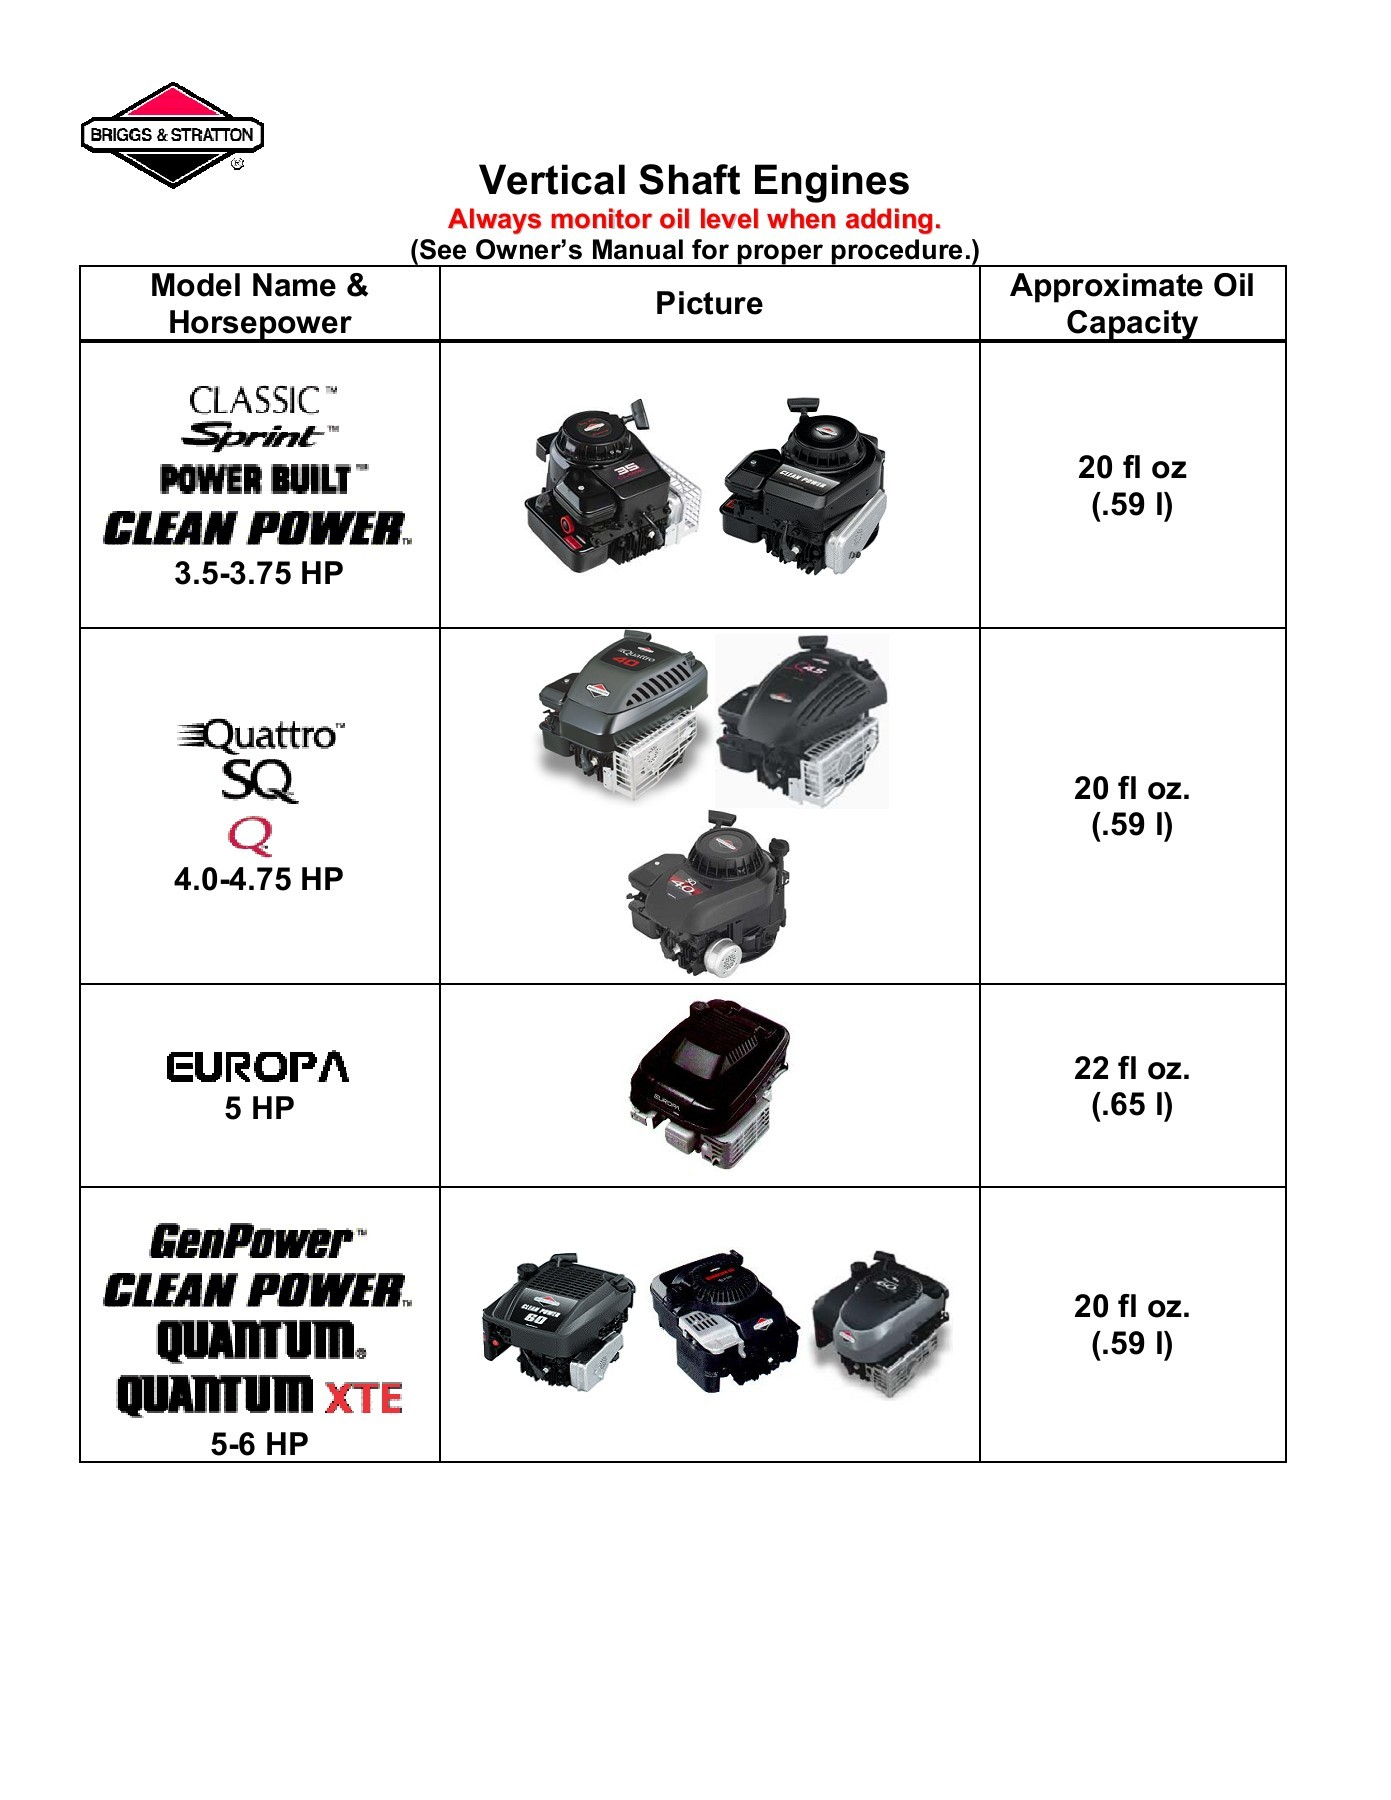 briggs and stratton ybsxs 7242vf 2003 dodge ram 2500 wiring diagram oil capacity engines pages 1 8 text version fliphtml5